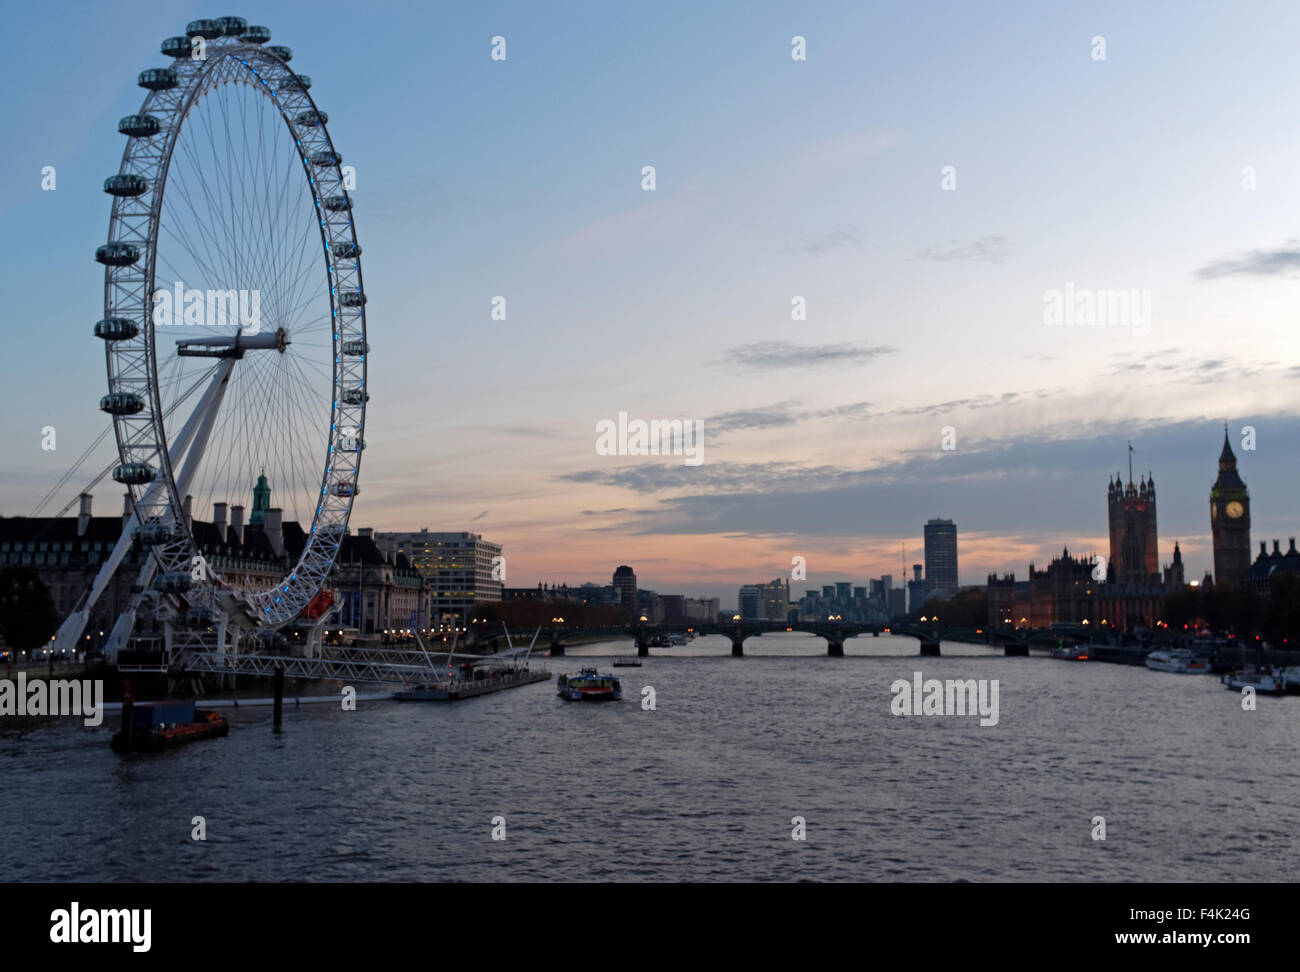 London Eye overlooking River Thames at dusk, London England - Stock Image